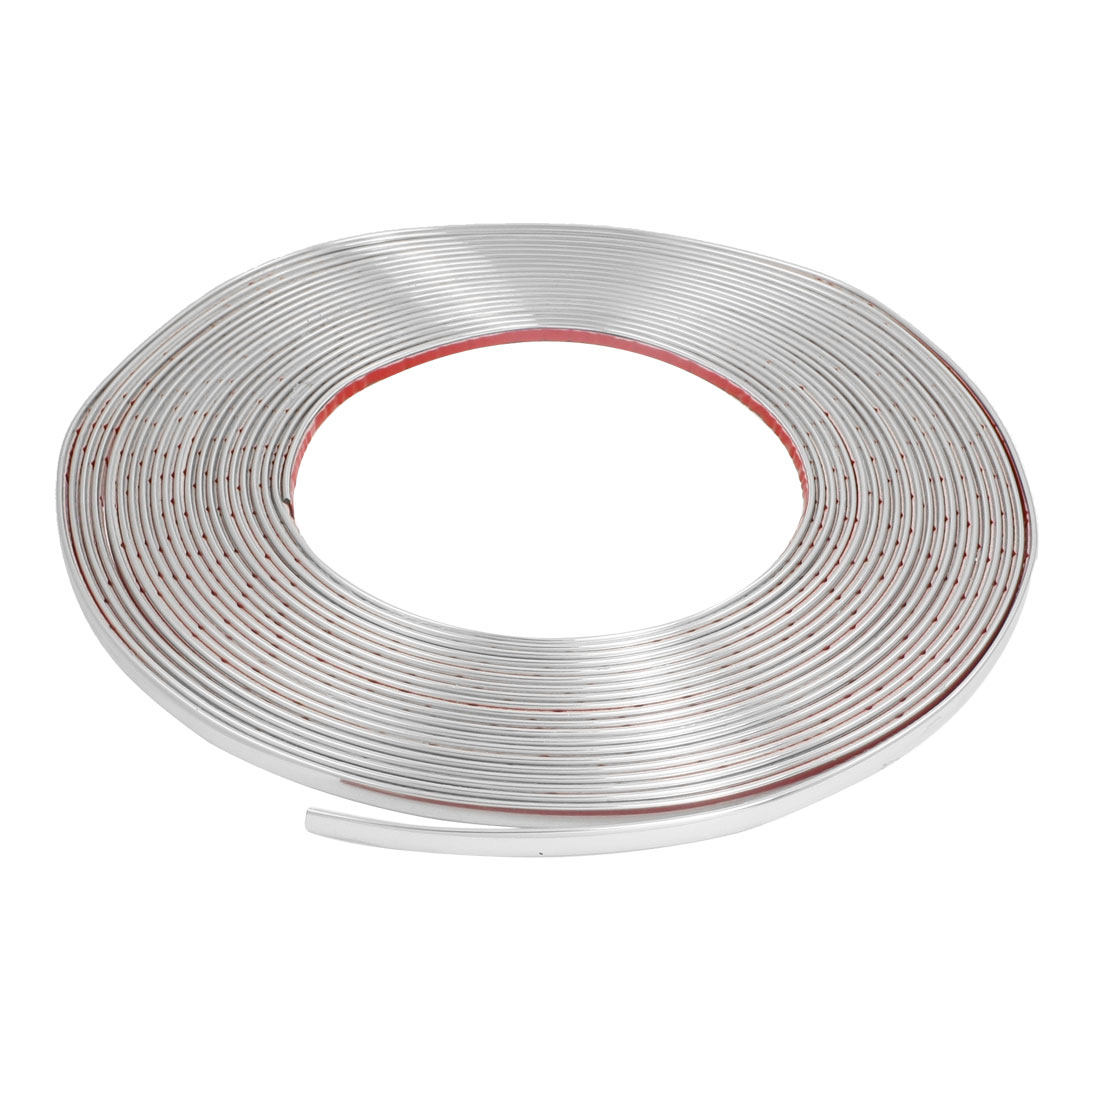 Car Window Silver Tone Soft PVC Adhesive Back Moulding Trim Strip Line 15M x 8mm